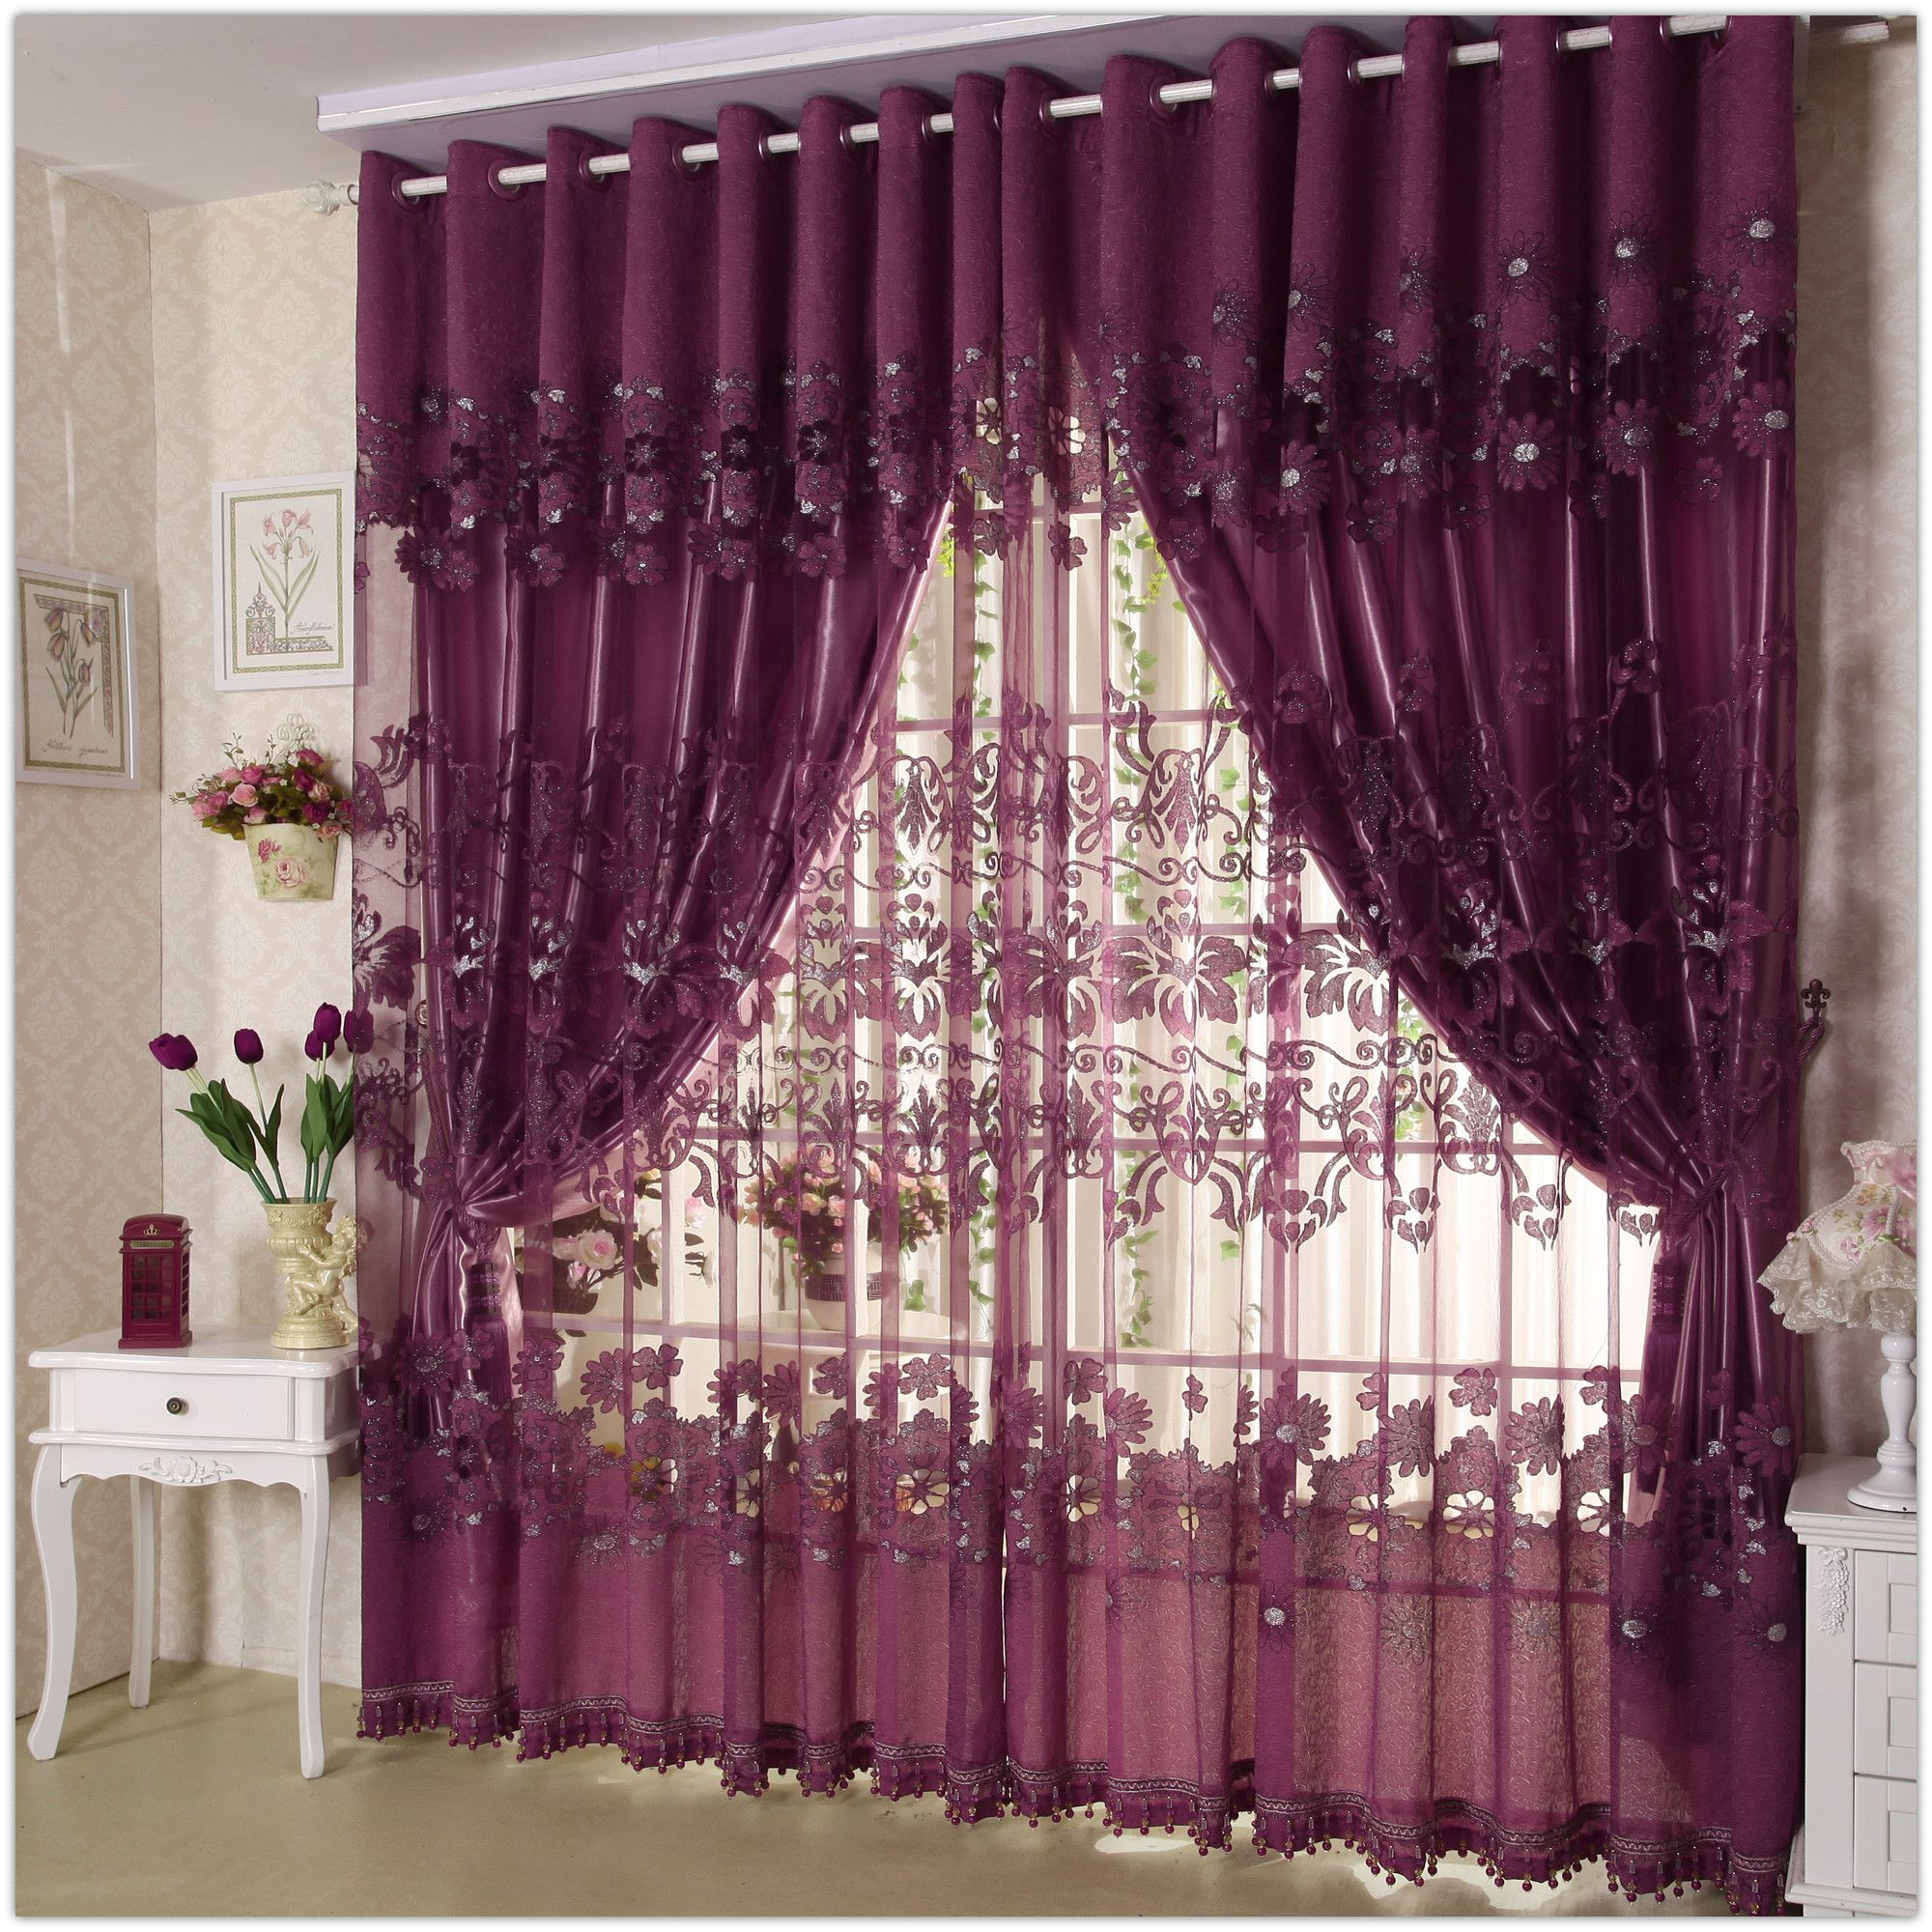 Quality flower purple curtain fashion modern brief sheer curtain with  blackout lining curtains free shipping $96.11